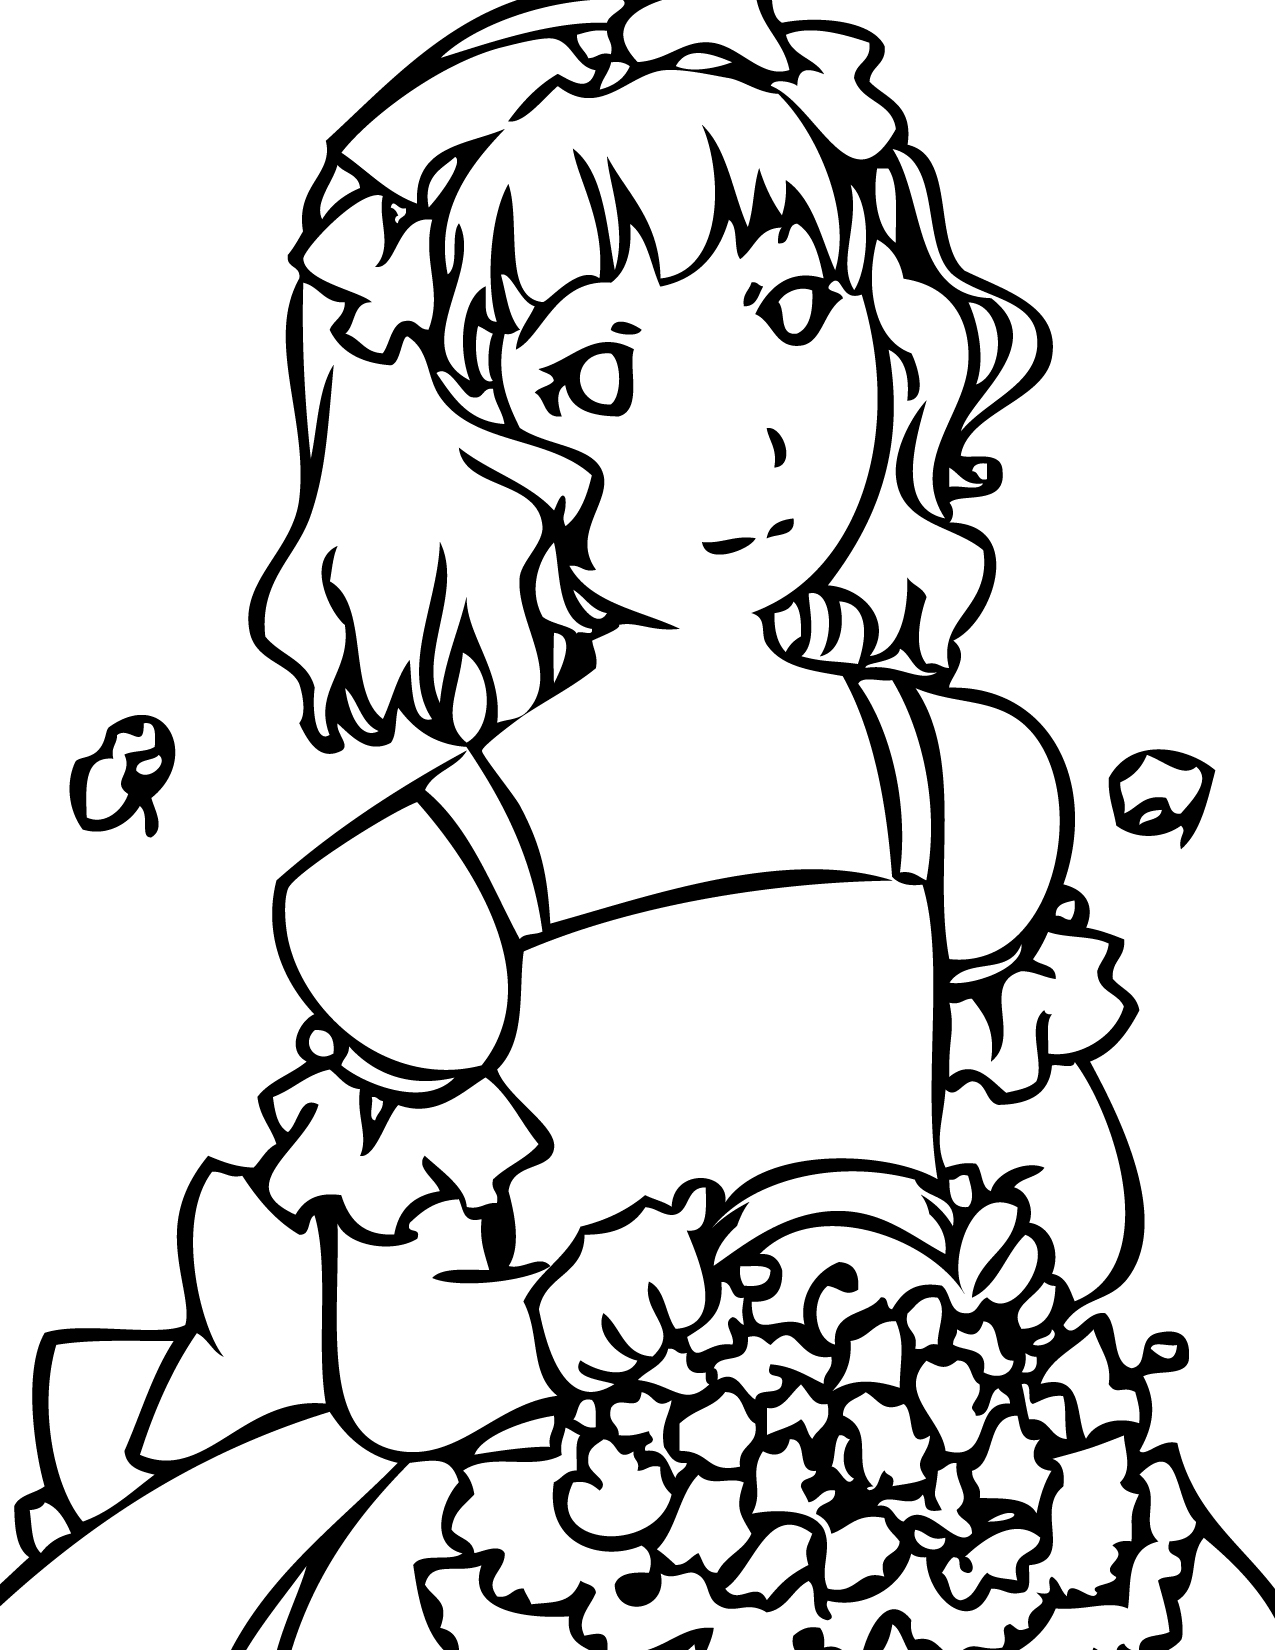 wedding coloring pages wedding coloring pages best coloring pages for kids wedding coloring pages 1 2